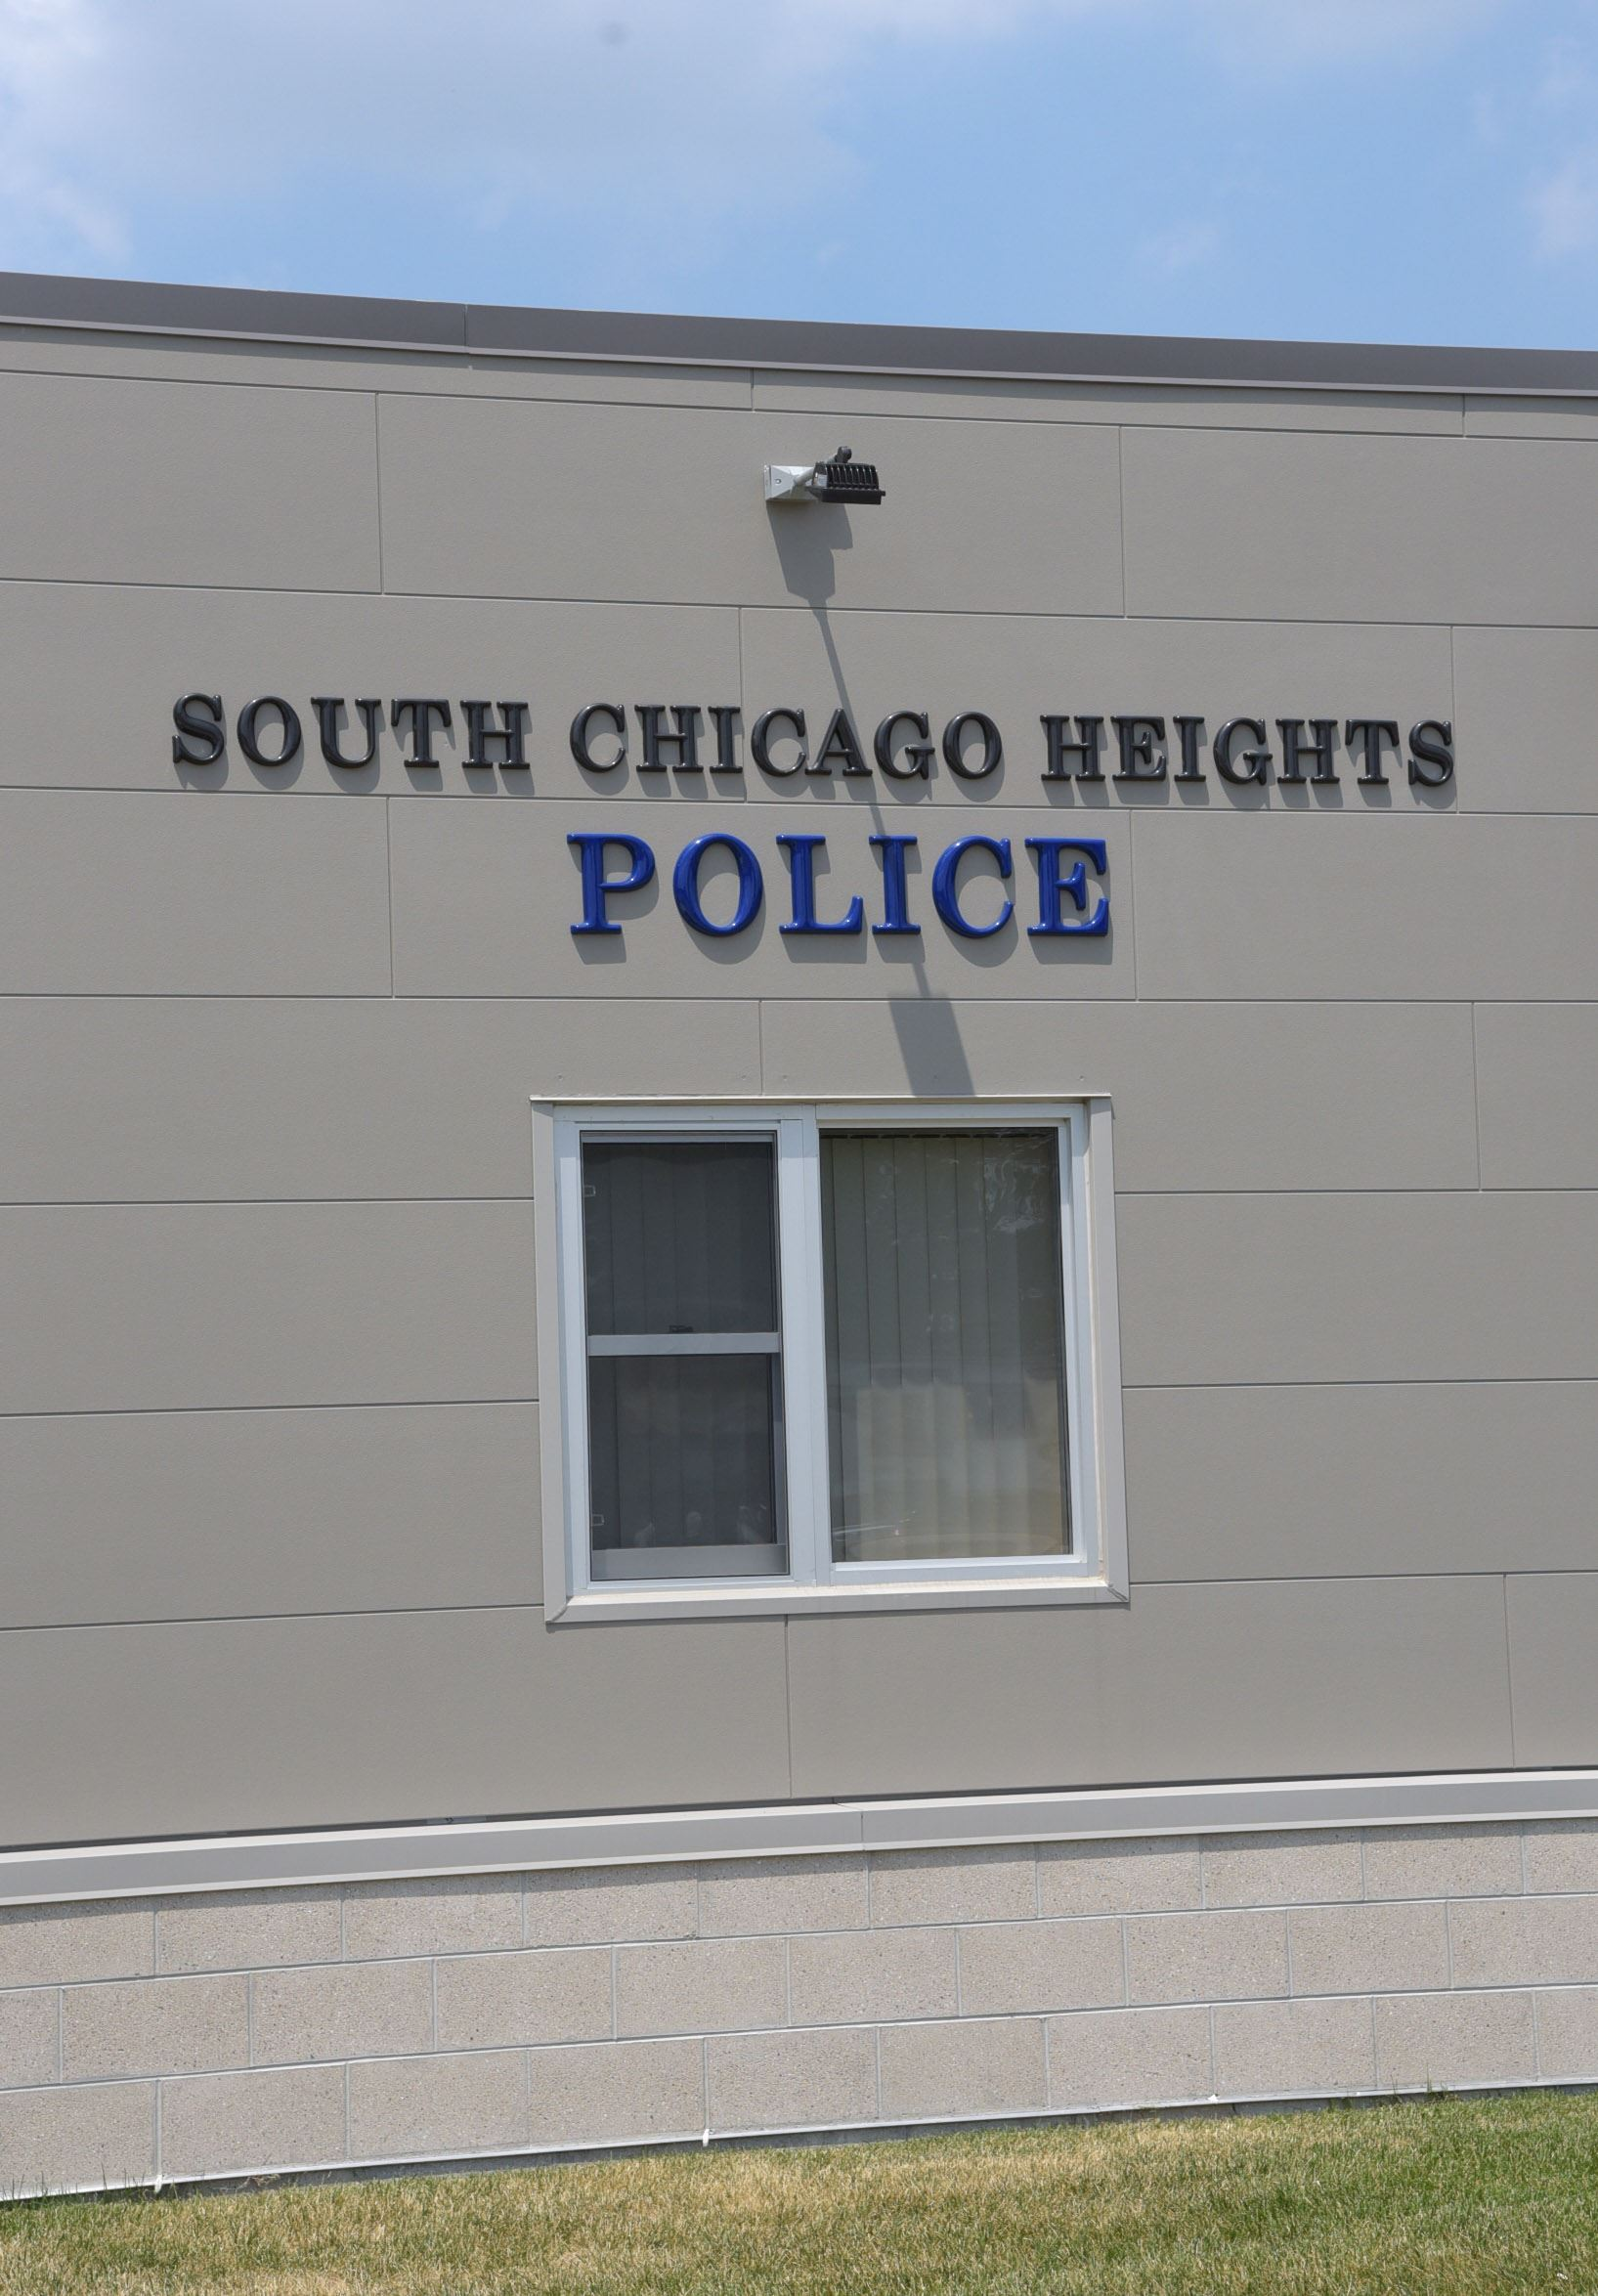 Front of the South Chicago Heights police building